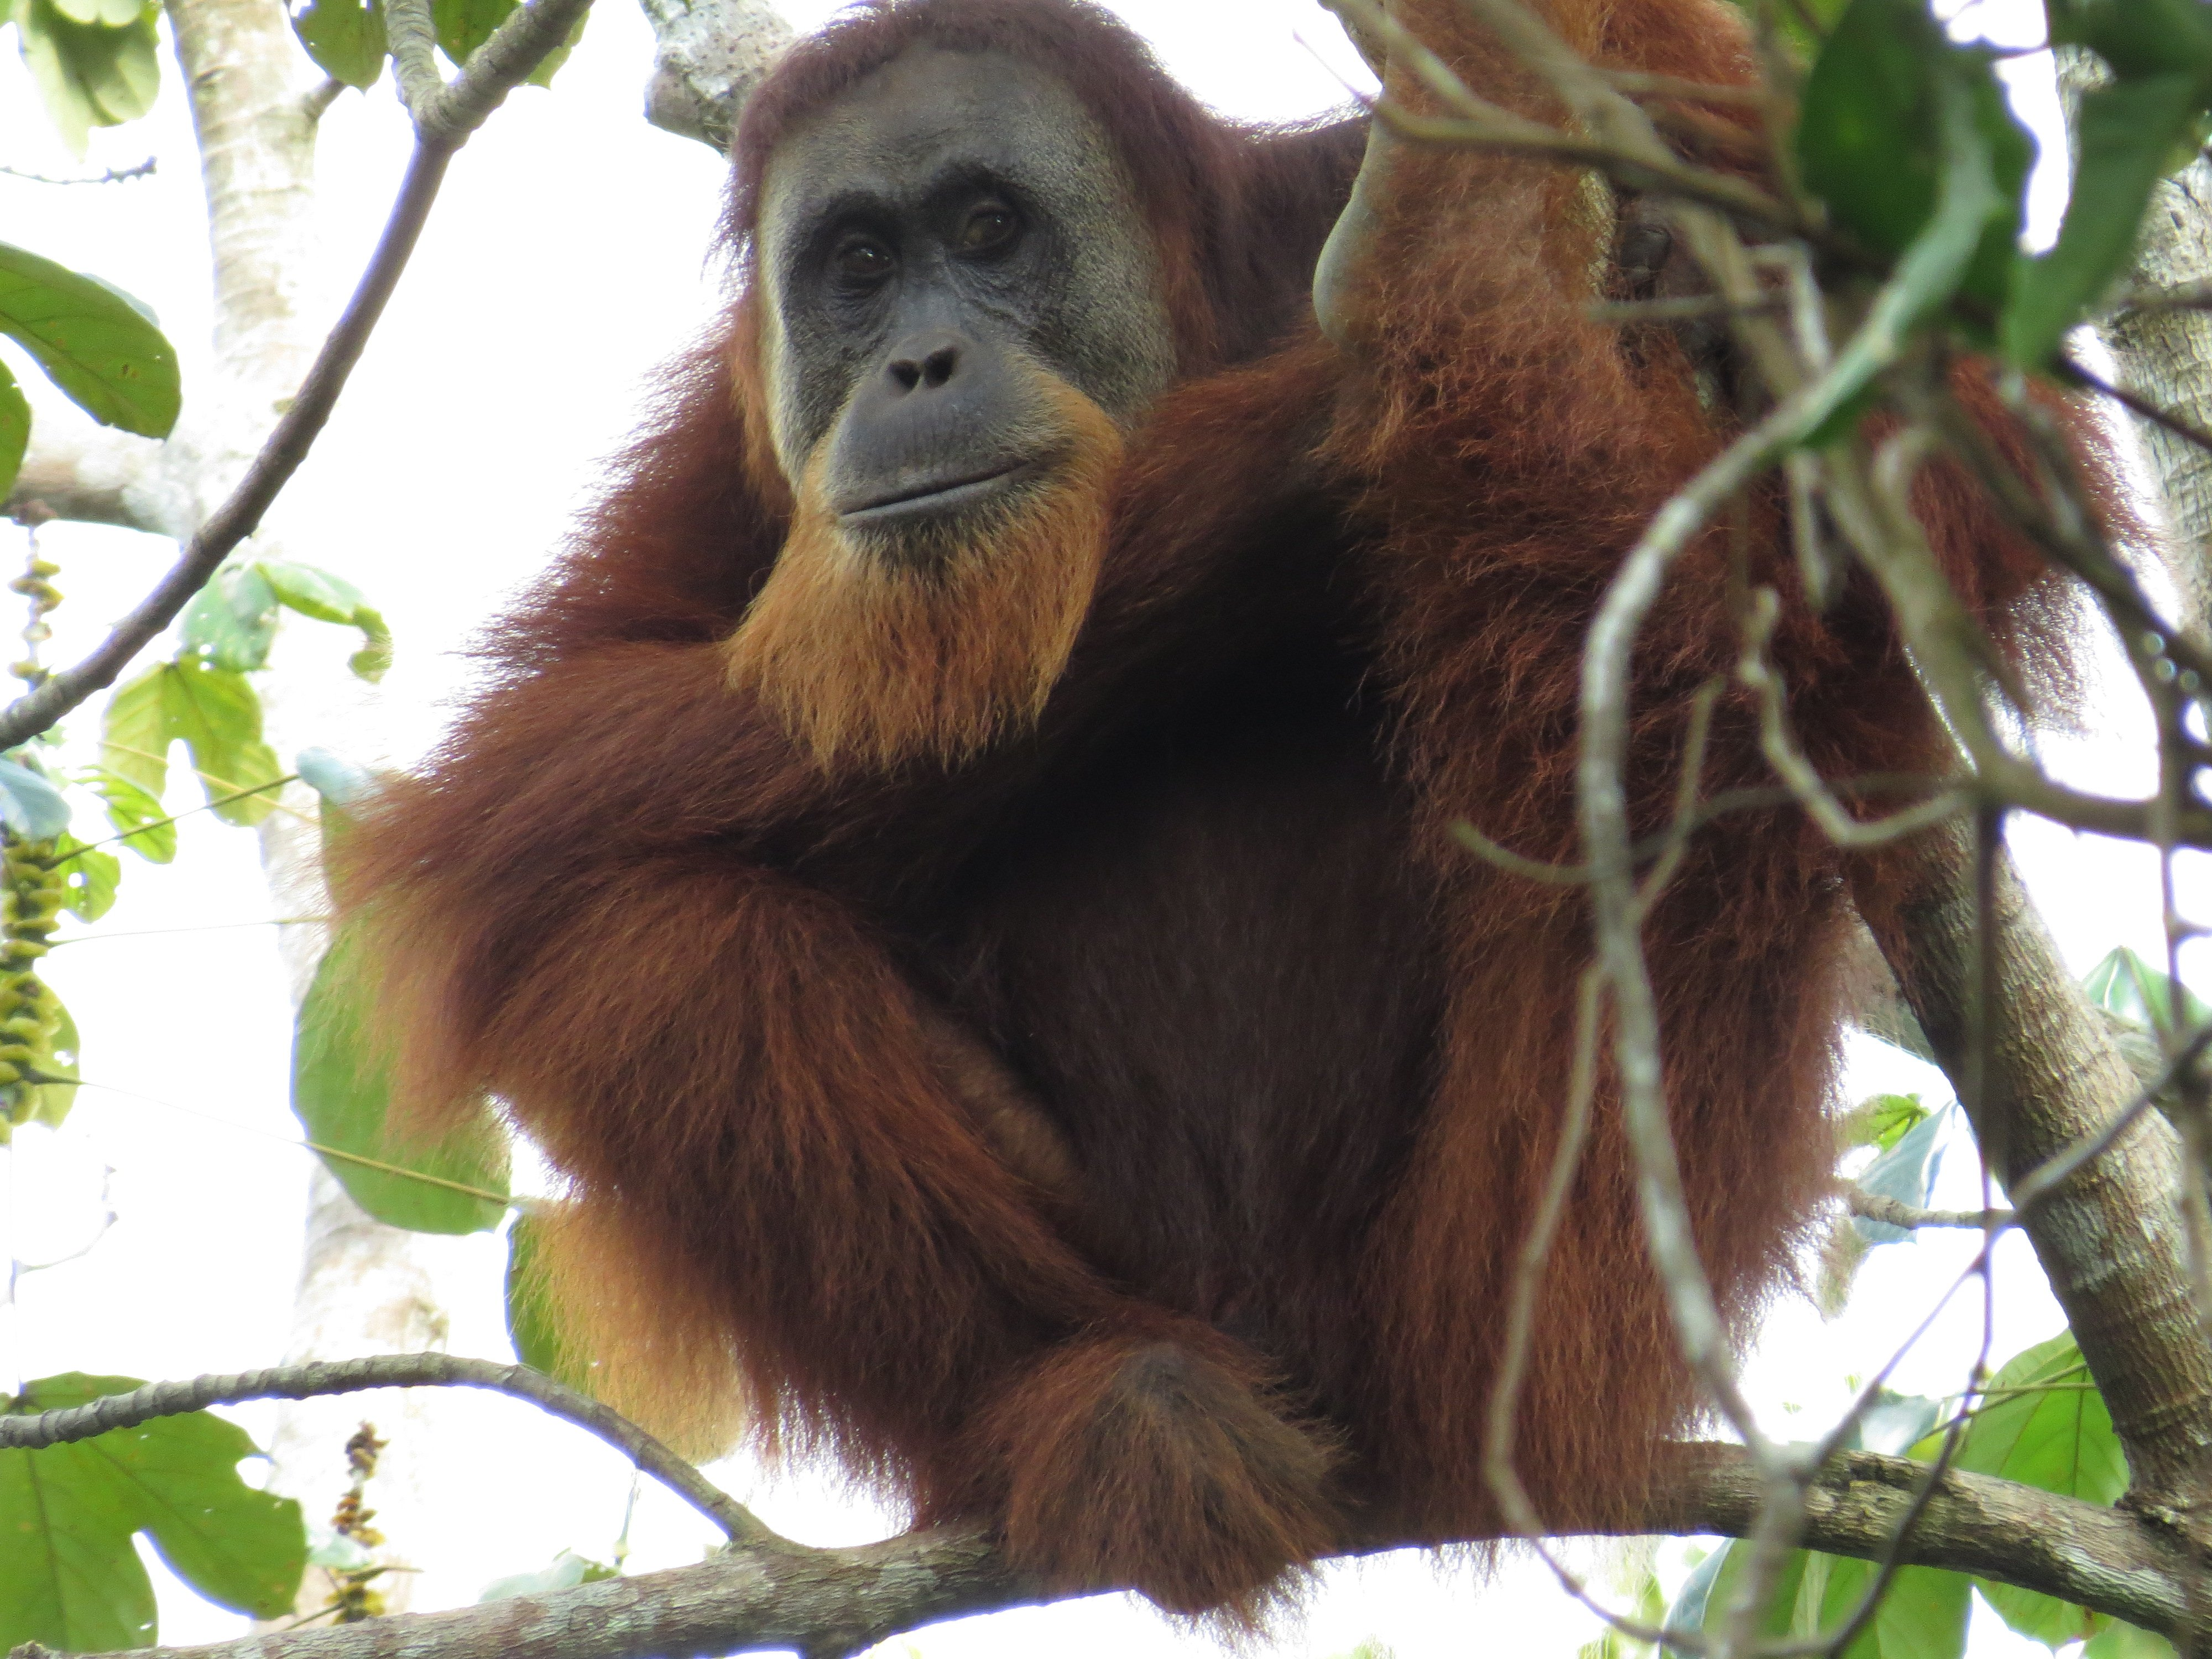 Orangutans spotted at Singkil!